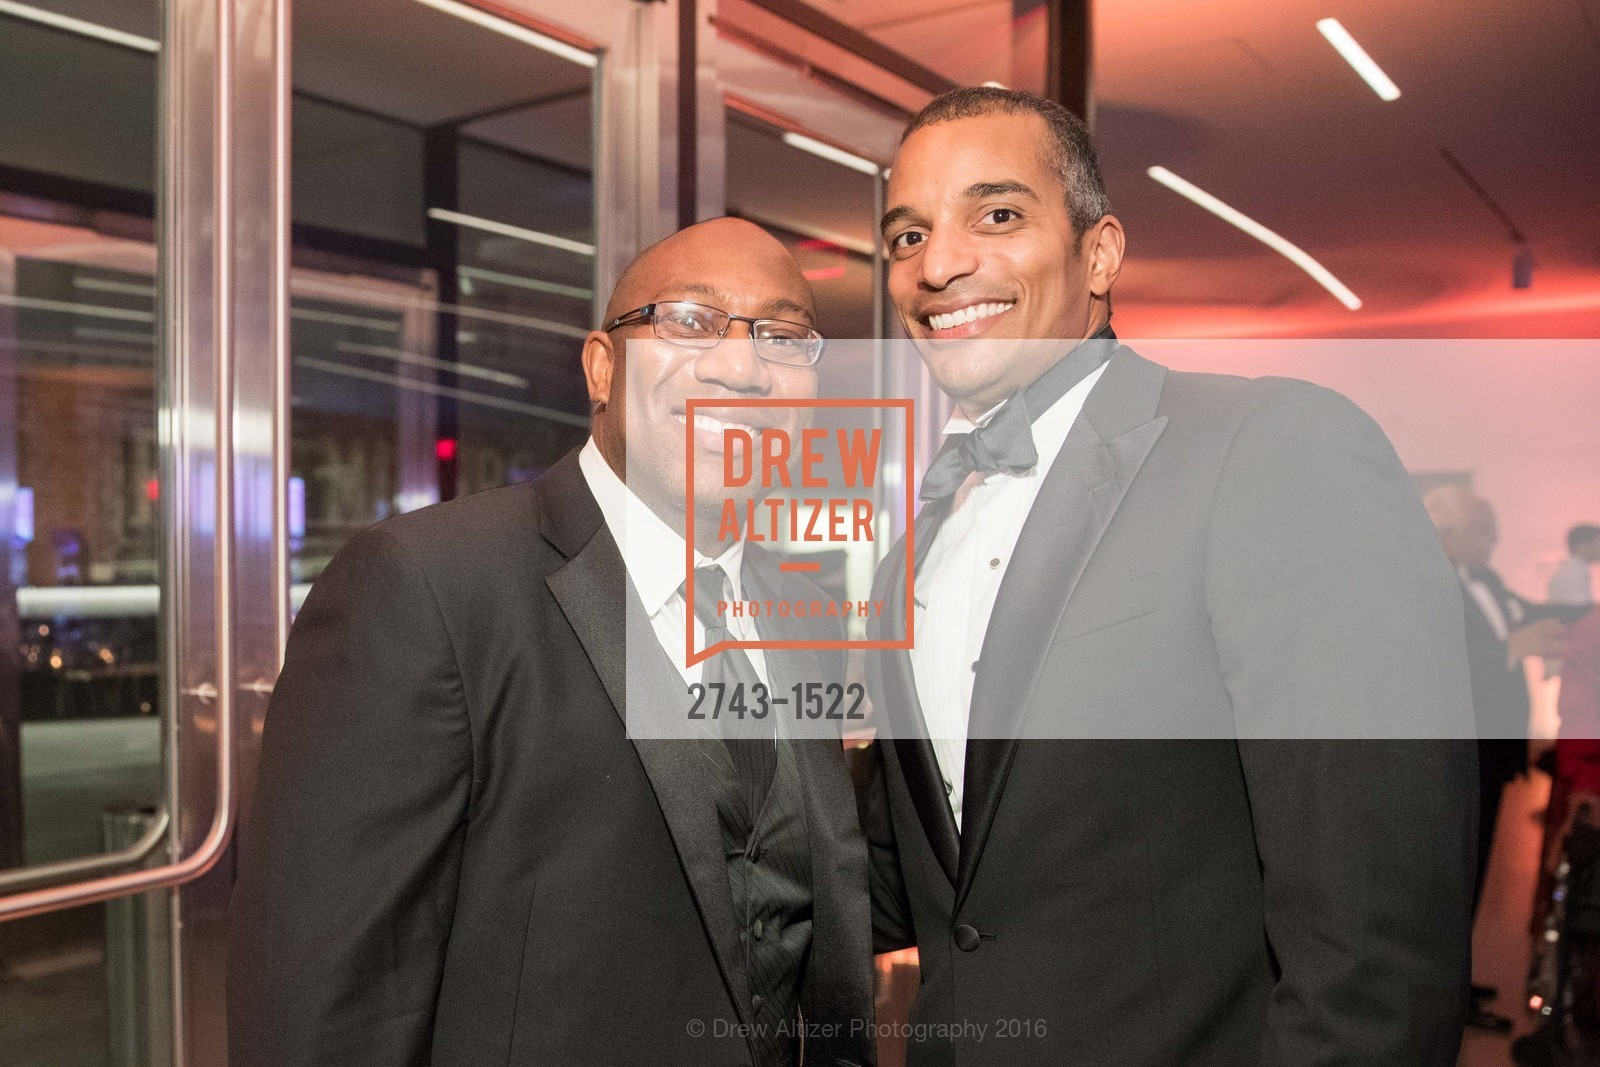 Alan Fernandez-Smith, Yusef Freeman, Photo #2743-1522